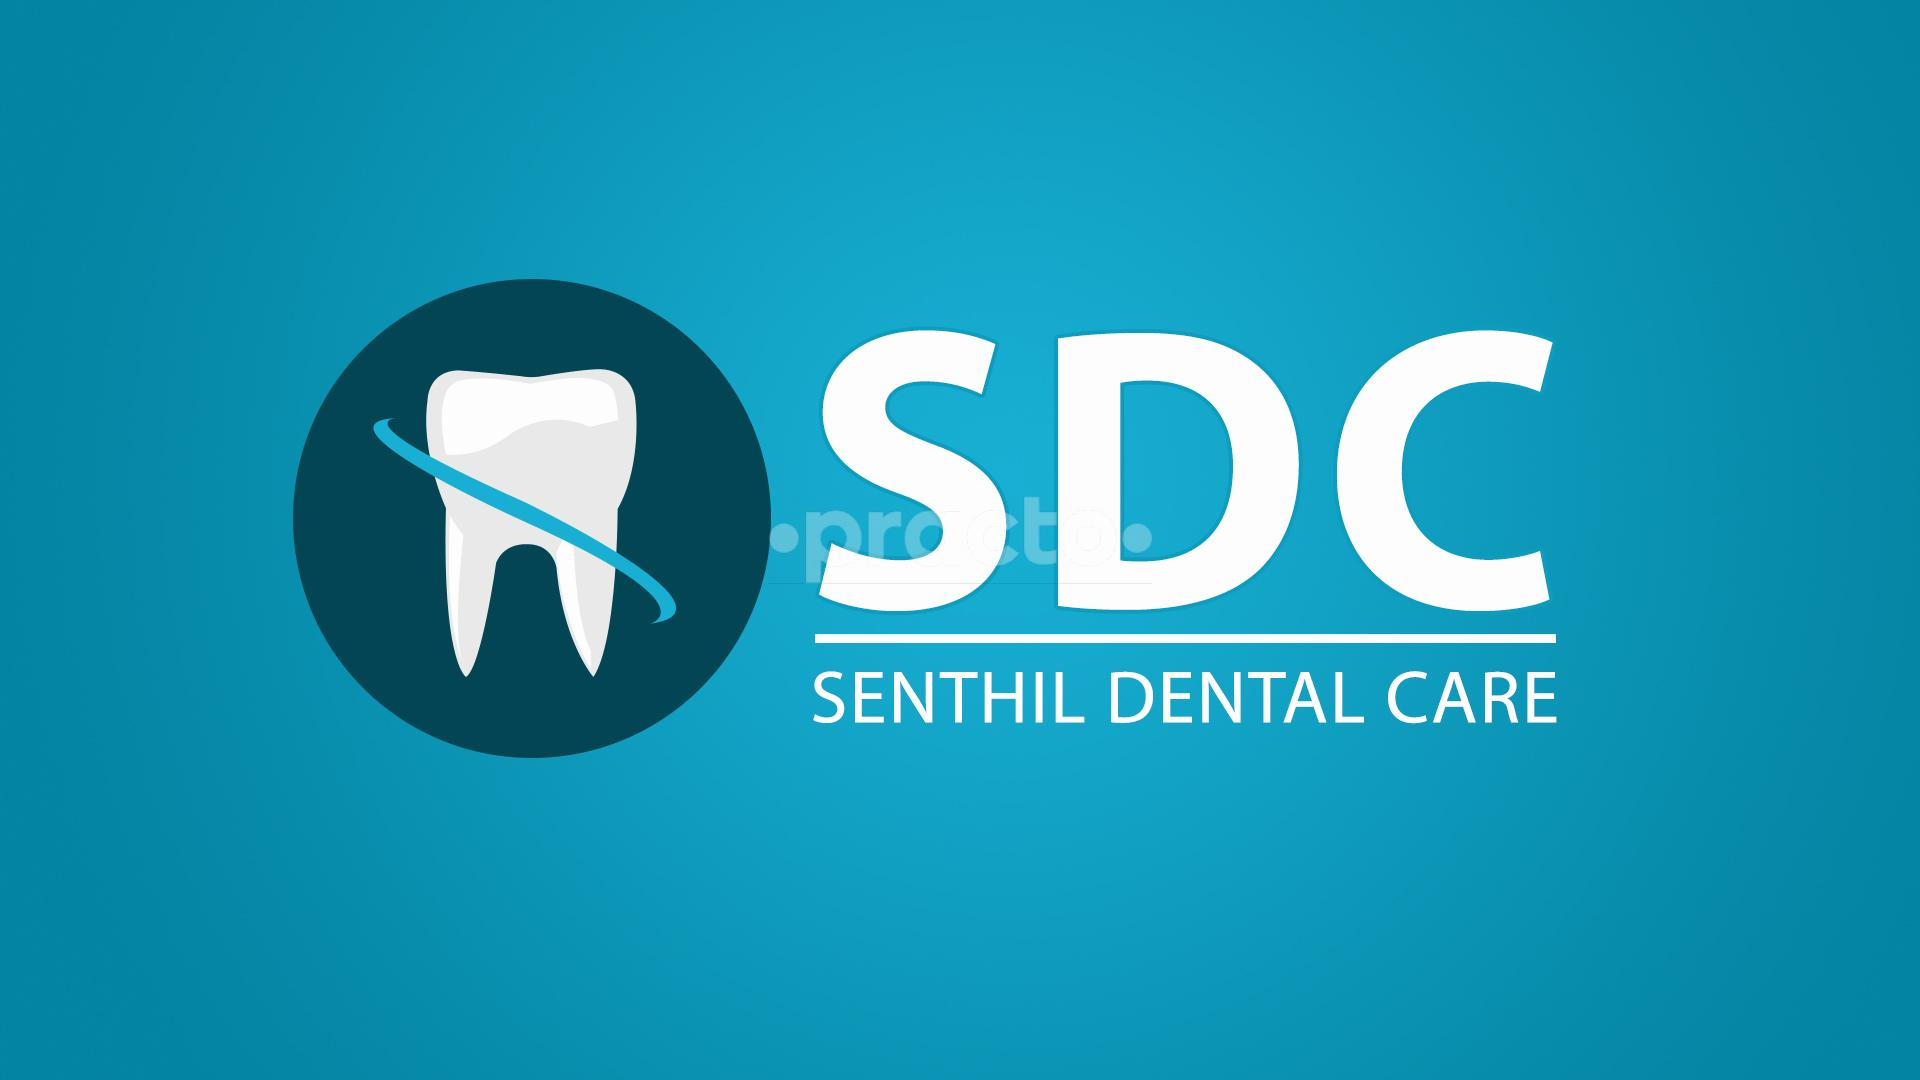 Senthil Dental Care